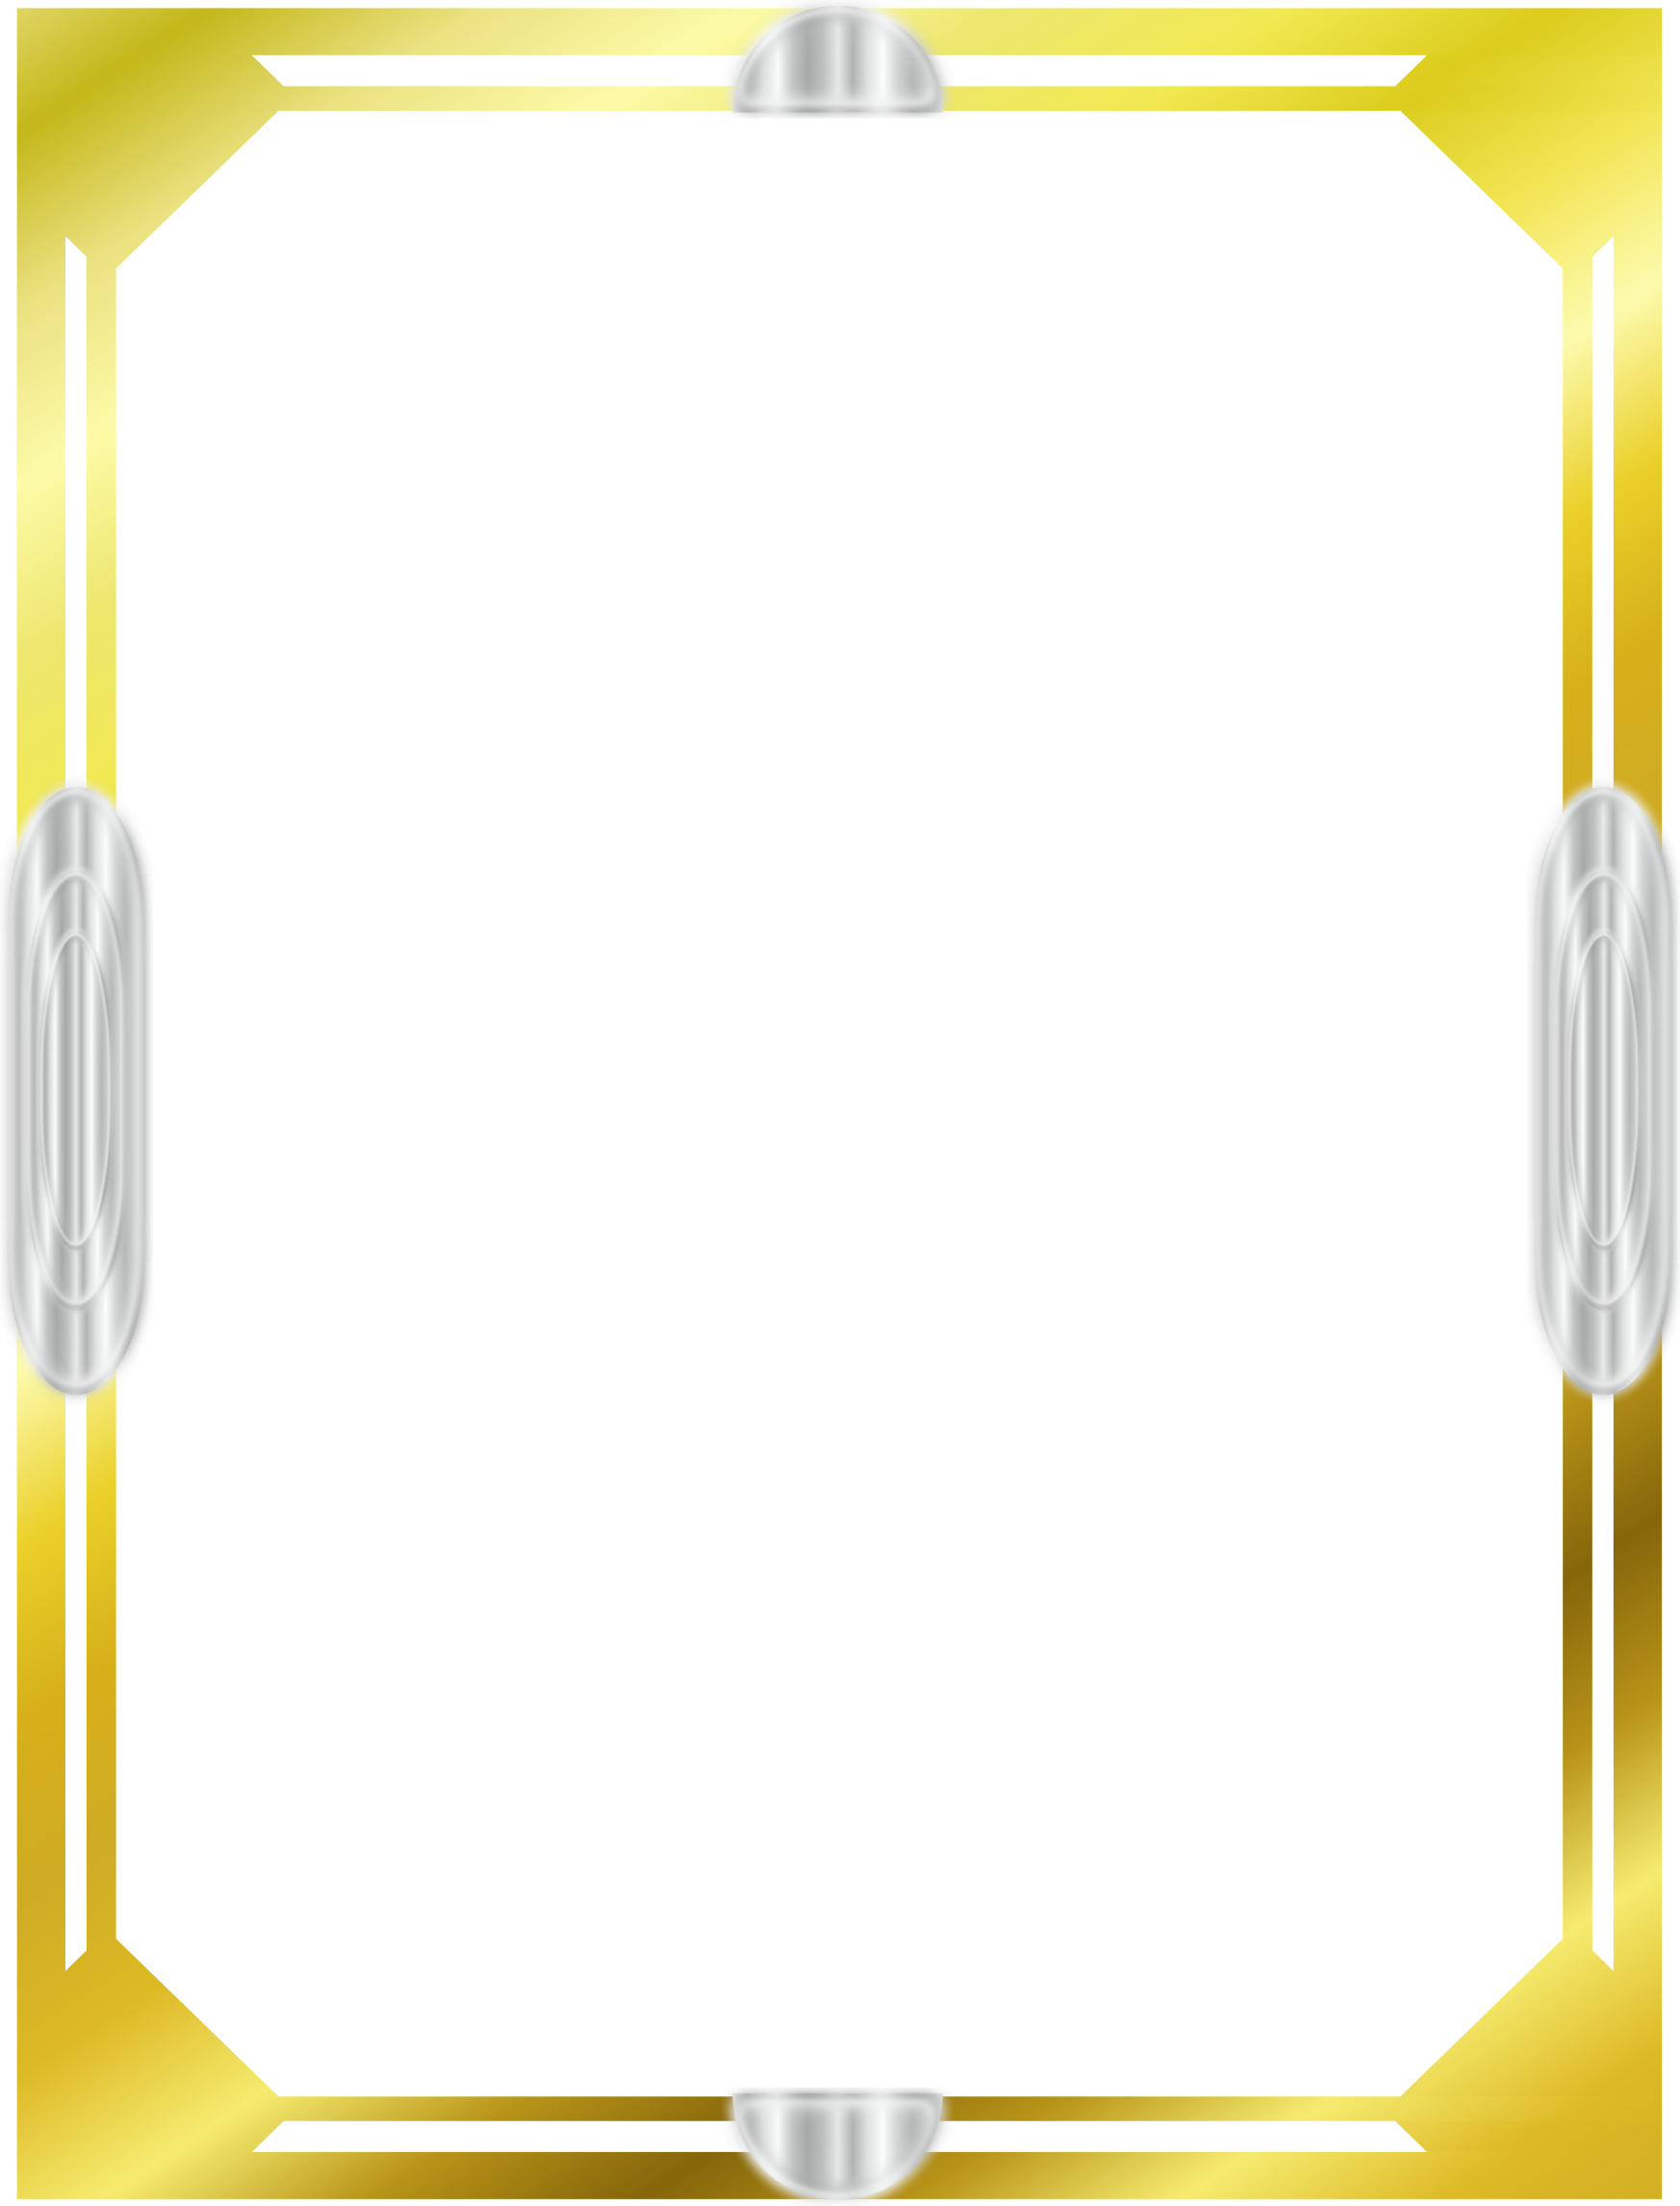 Art deco borders png. Border icons free and